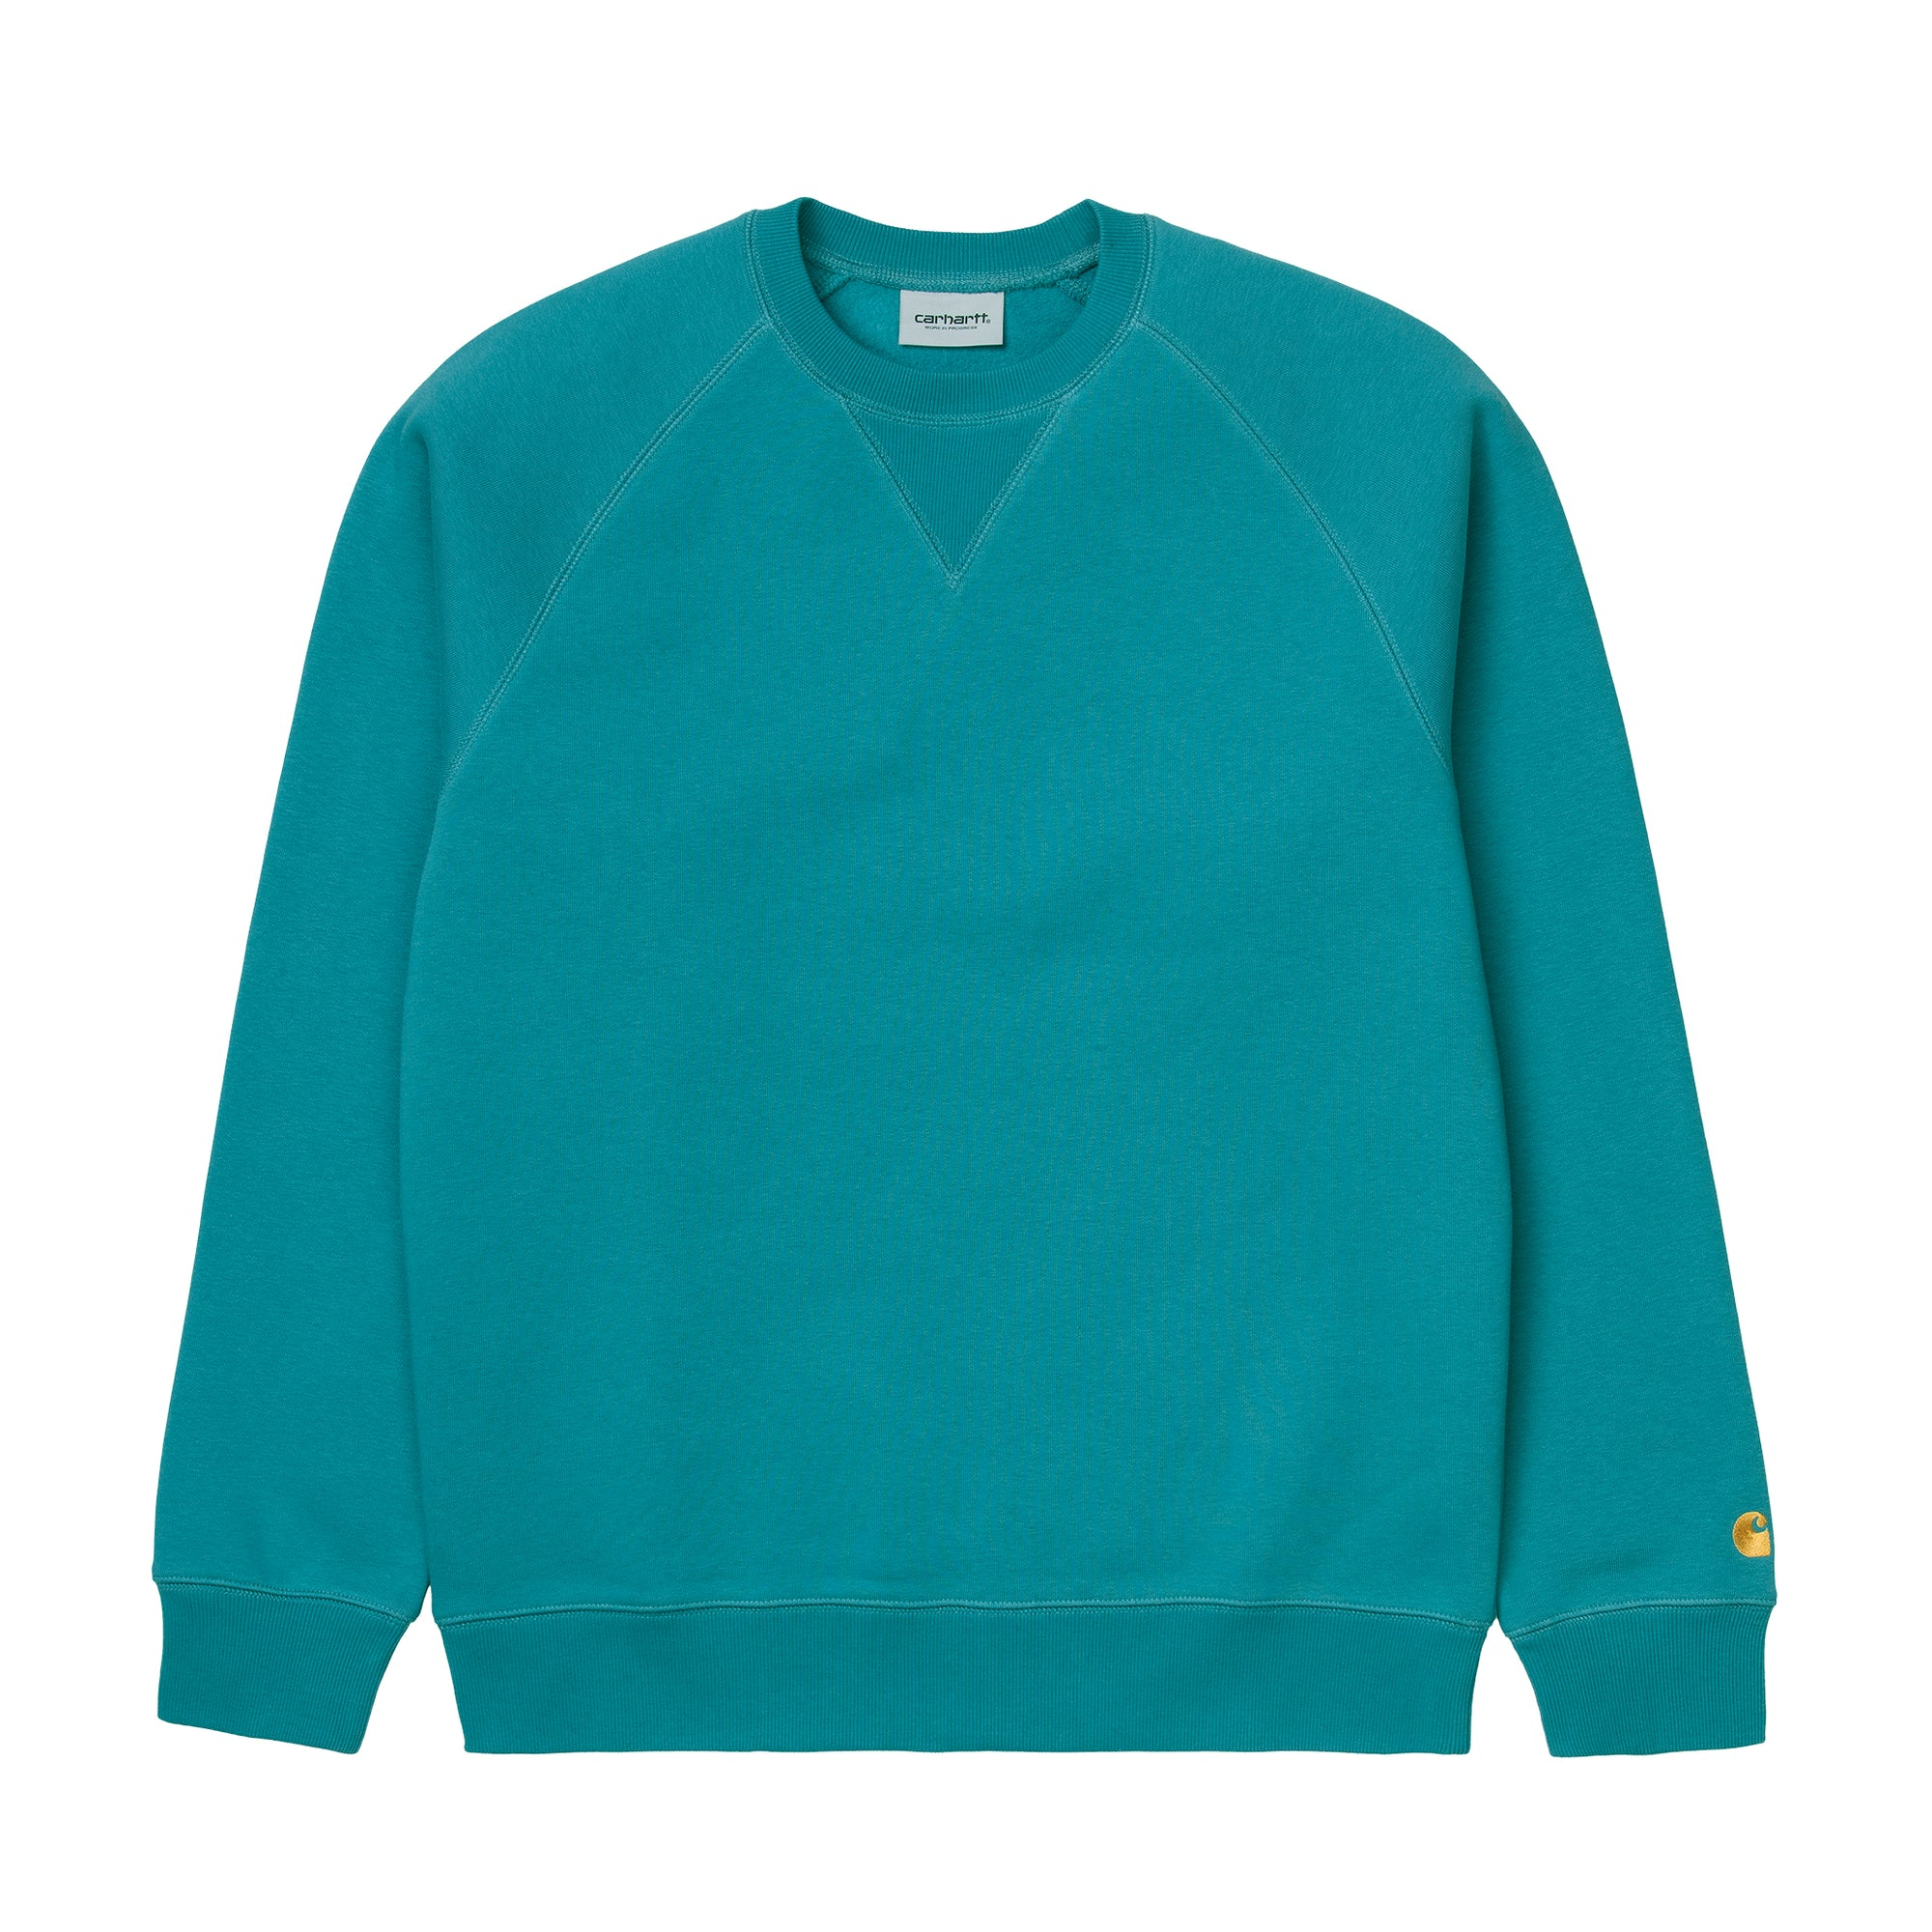 Carhartt WIP Chase Sweat: Hydro / Gold - The Union Project